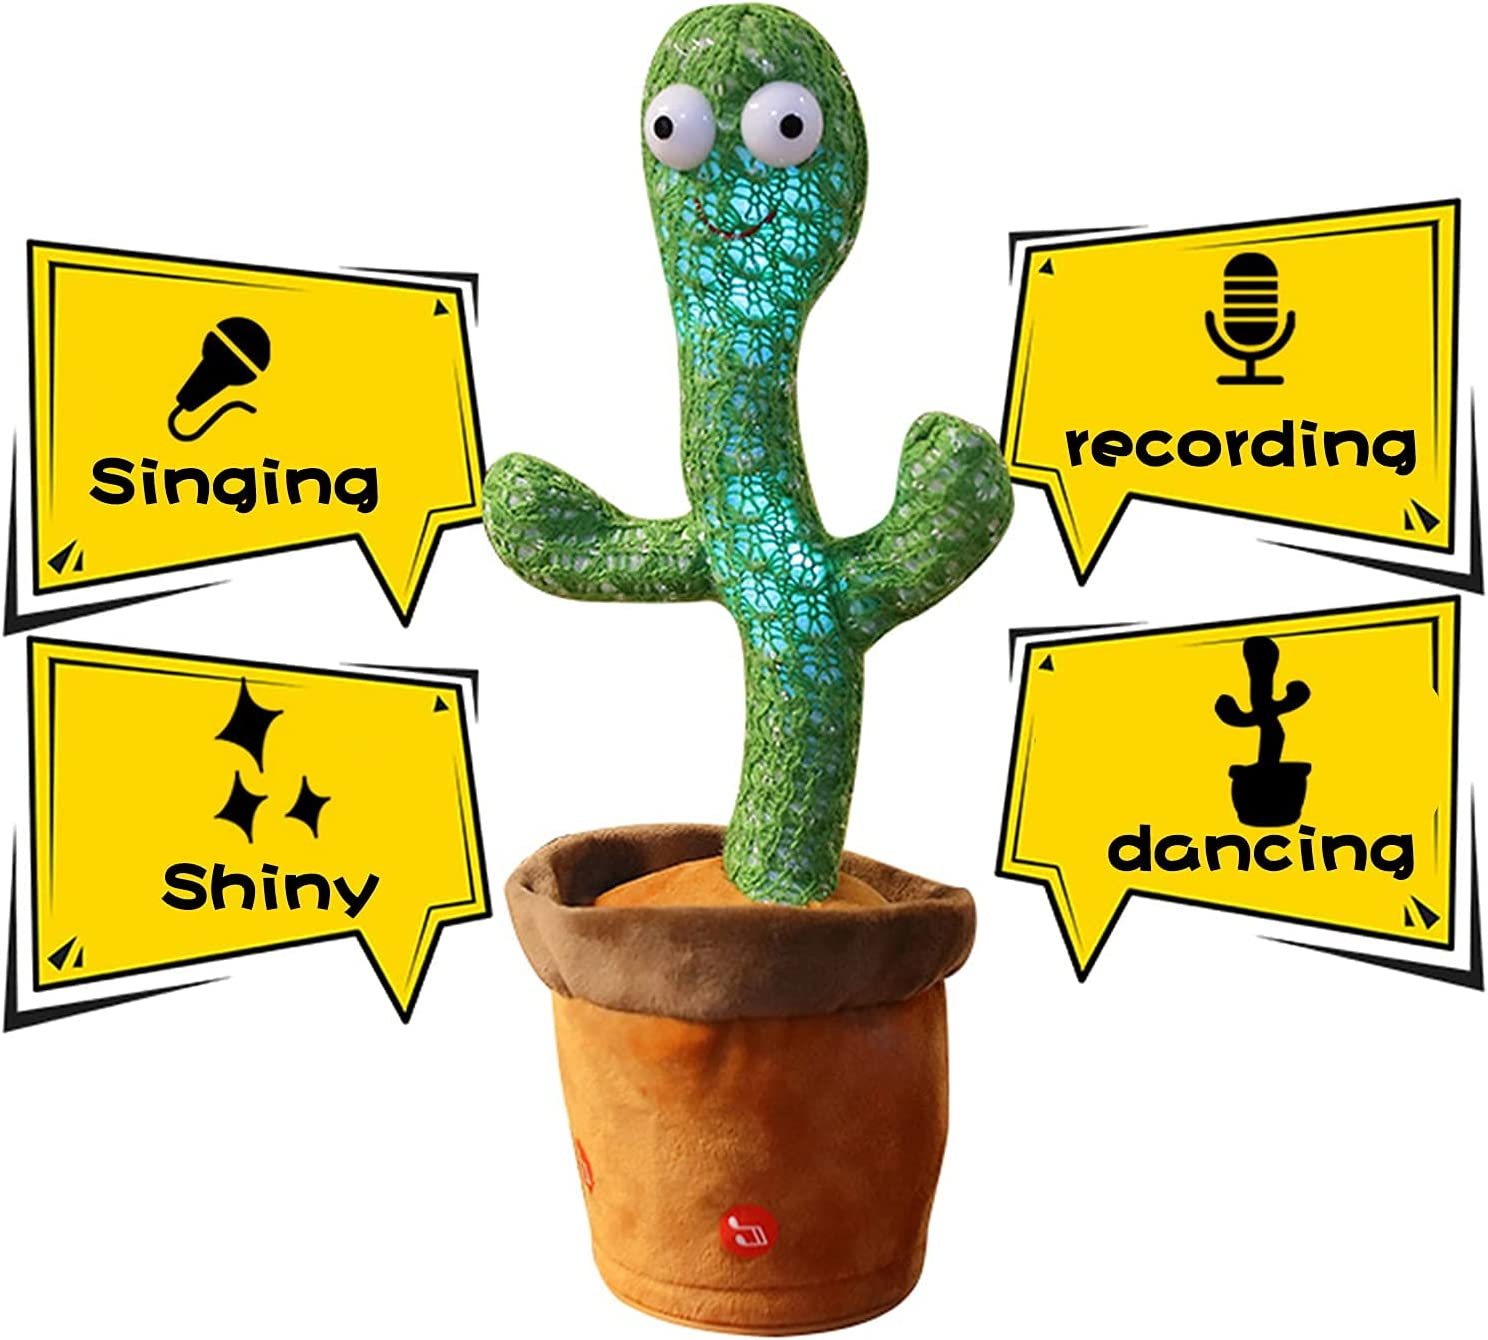 Buy Asionper Dancing Cactus Plush Toys, Cactus Toys for Babies Toddlers  Kids 3 Months and up, Dancing Recording Talking Singing, Dancing Cactus  Plush in Pot, Gifts for 1, 2, 3 Year Old